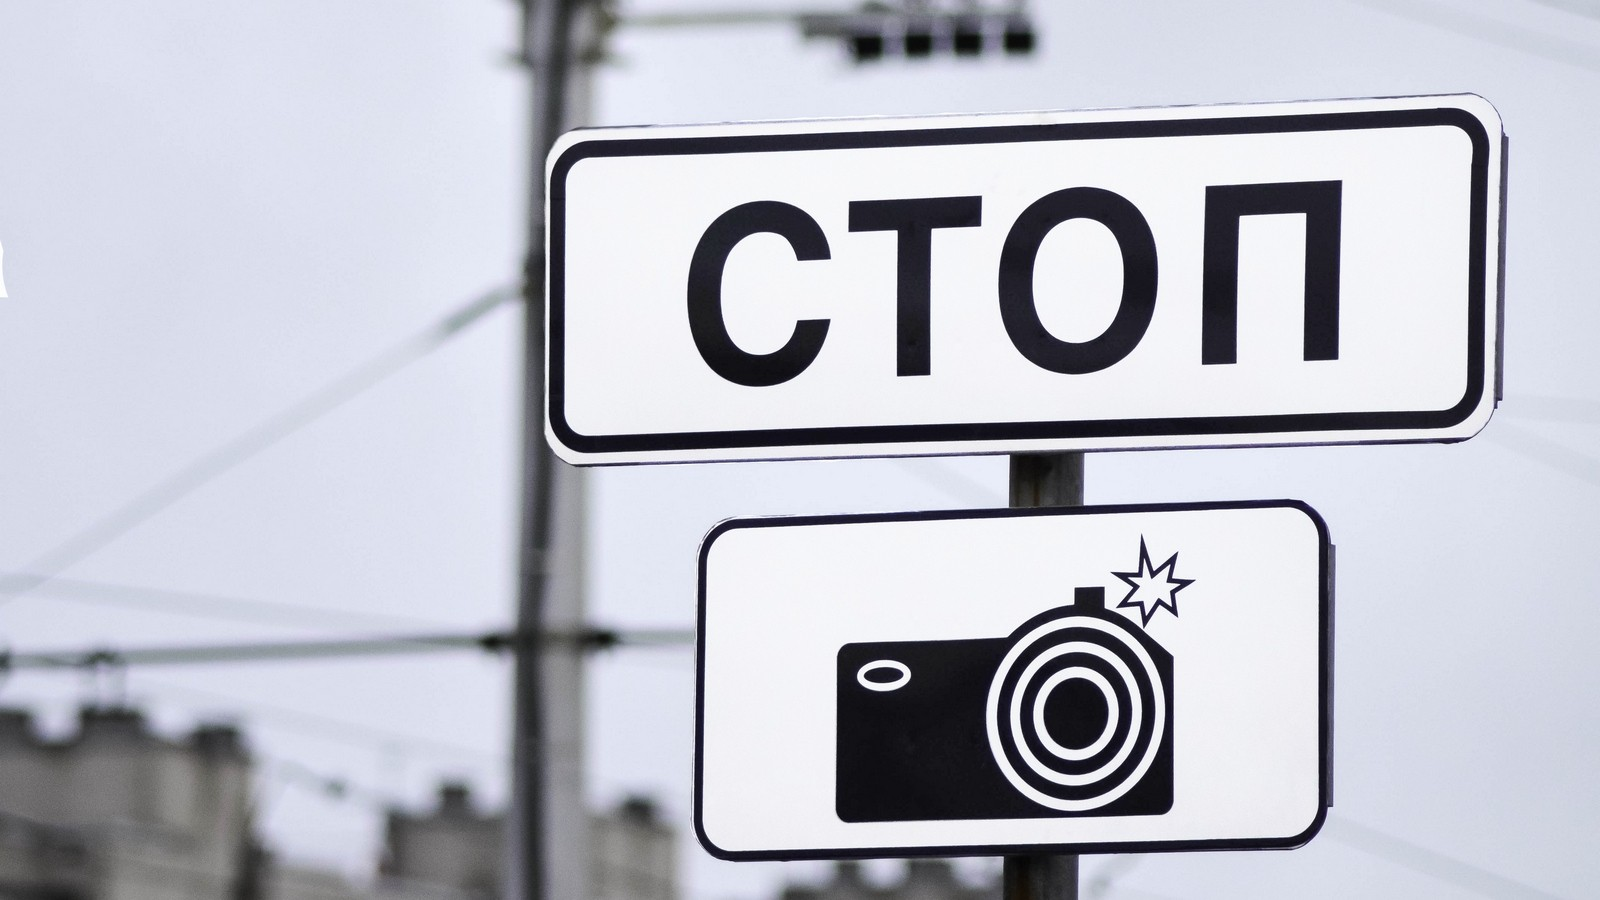 Traffic signs warning for for speed camera and inscription